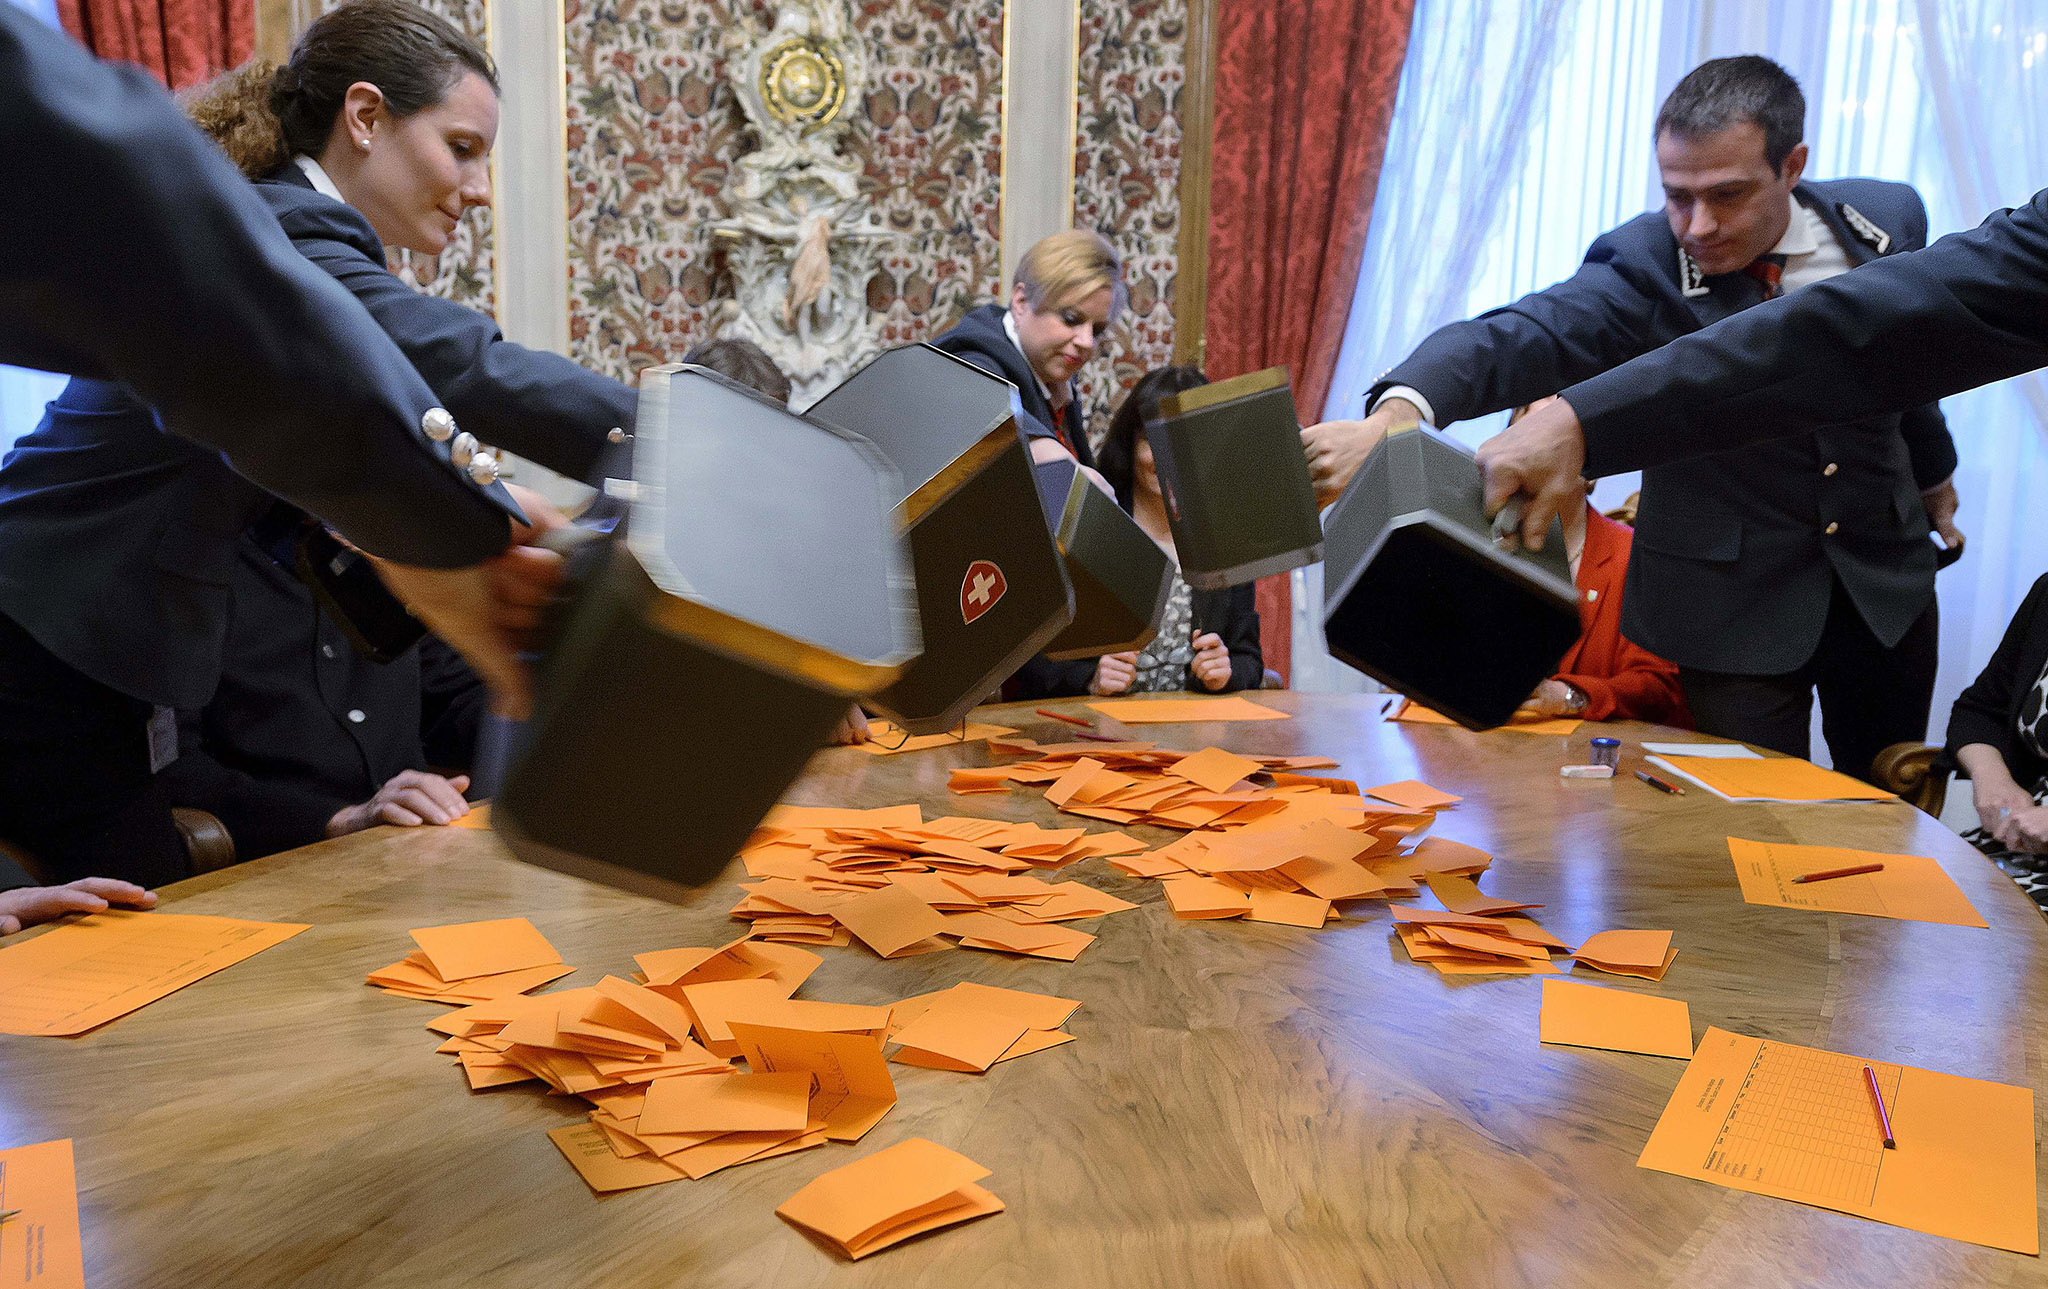 Ushers empty ballot boxes during an election meeting of the Swiss Federal assembly at the House of Parliament in Bern. Swiss lawmakers are due to elect a new federal government, with the populist right-wing, anti-immigrant Swiss People's Party expected to secure a second post after triumphing in the parliamentary polls